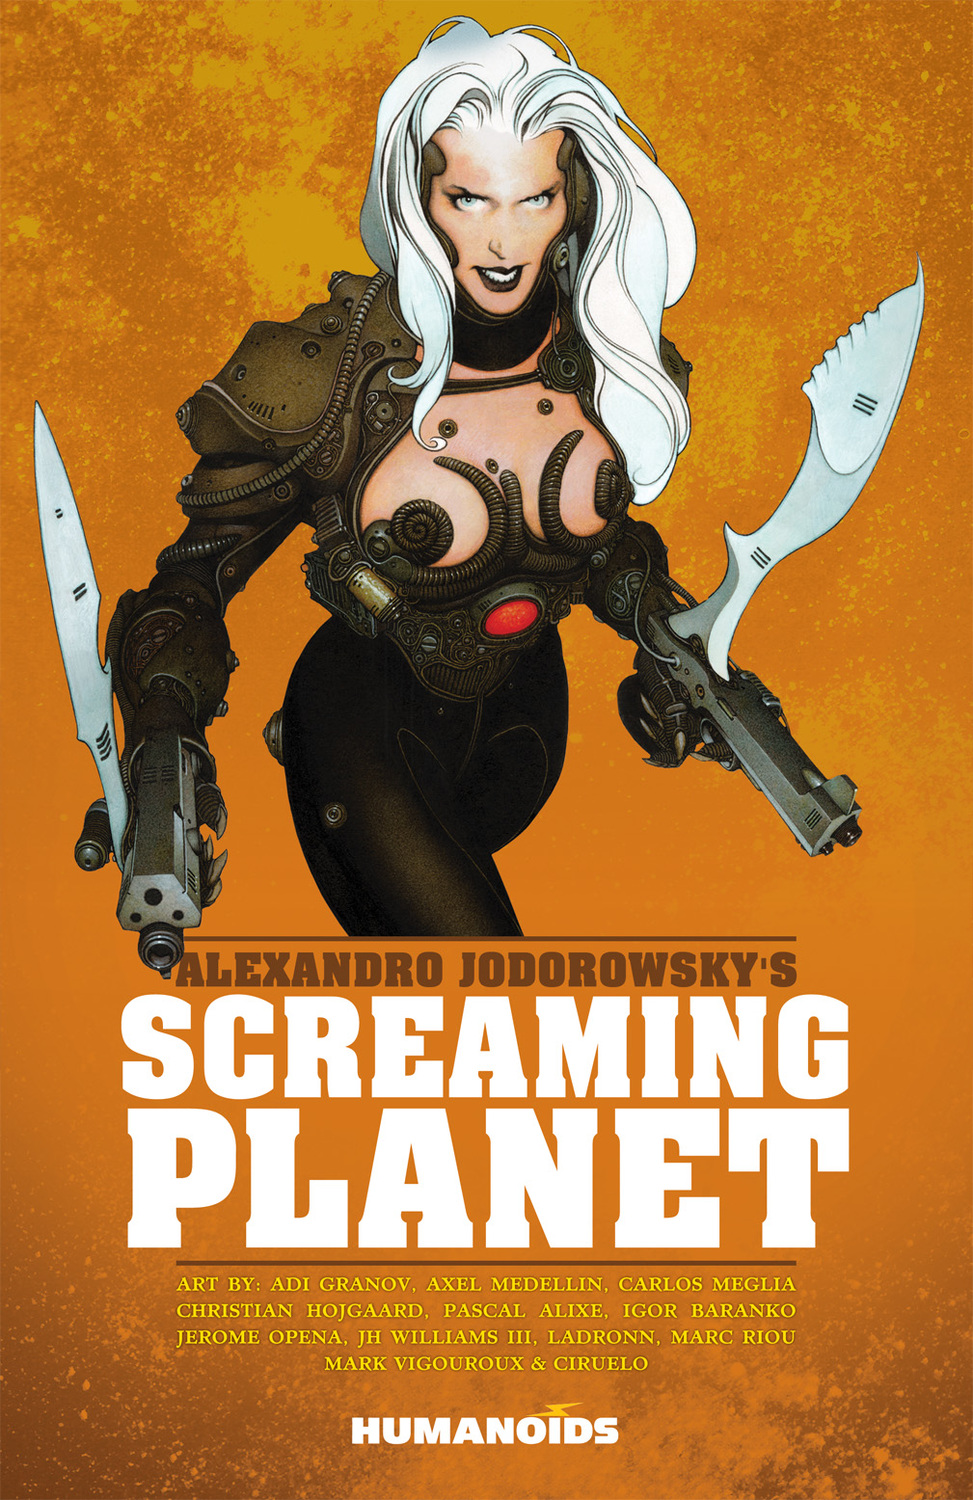 Jodorowsky's Screaming Planet the destruction of tilted arc – documents